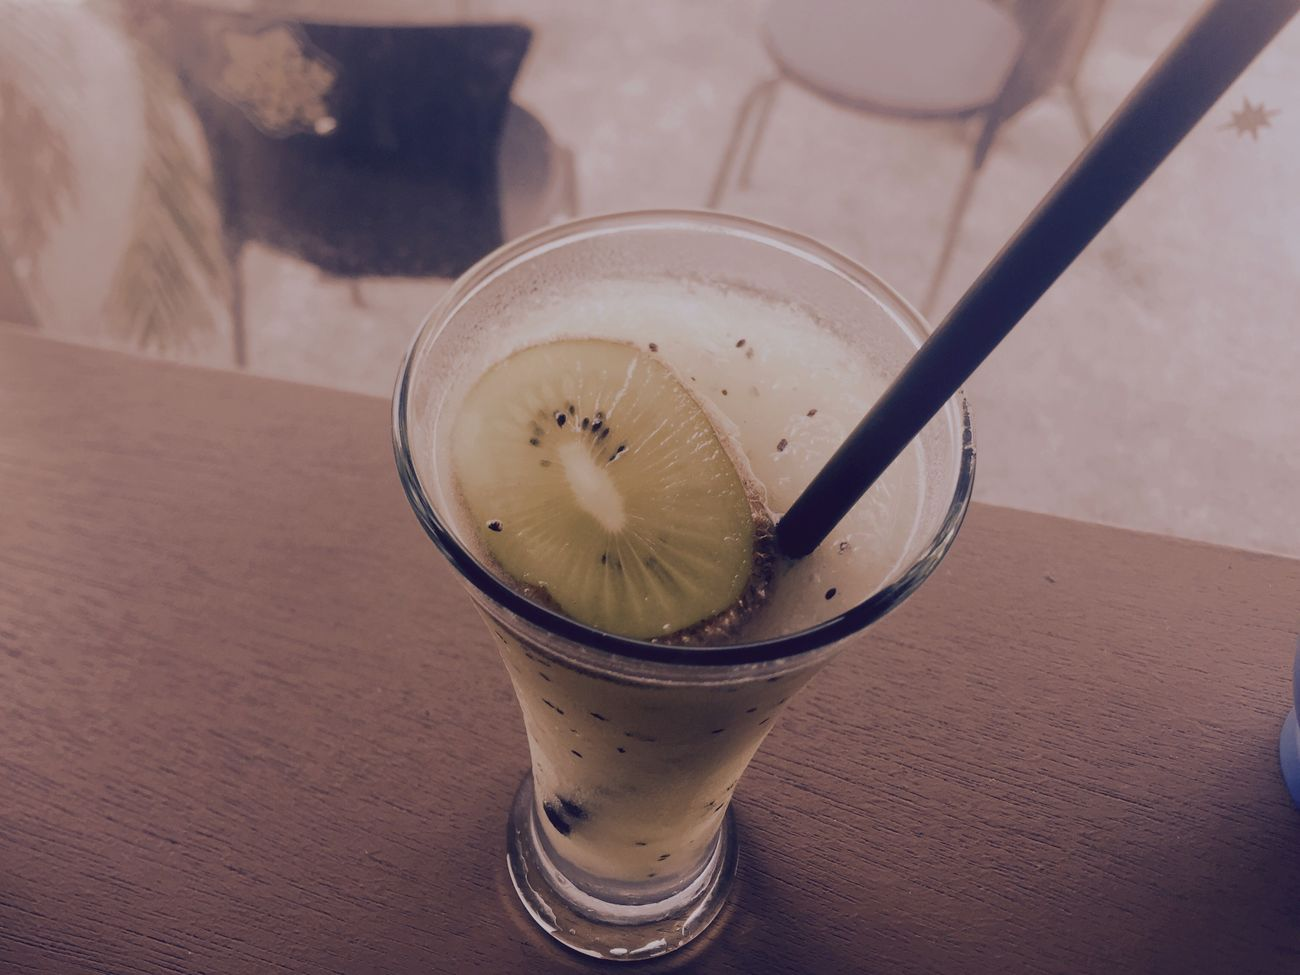 a cafe smoothie kiwi flavored drink